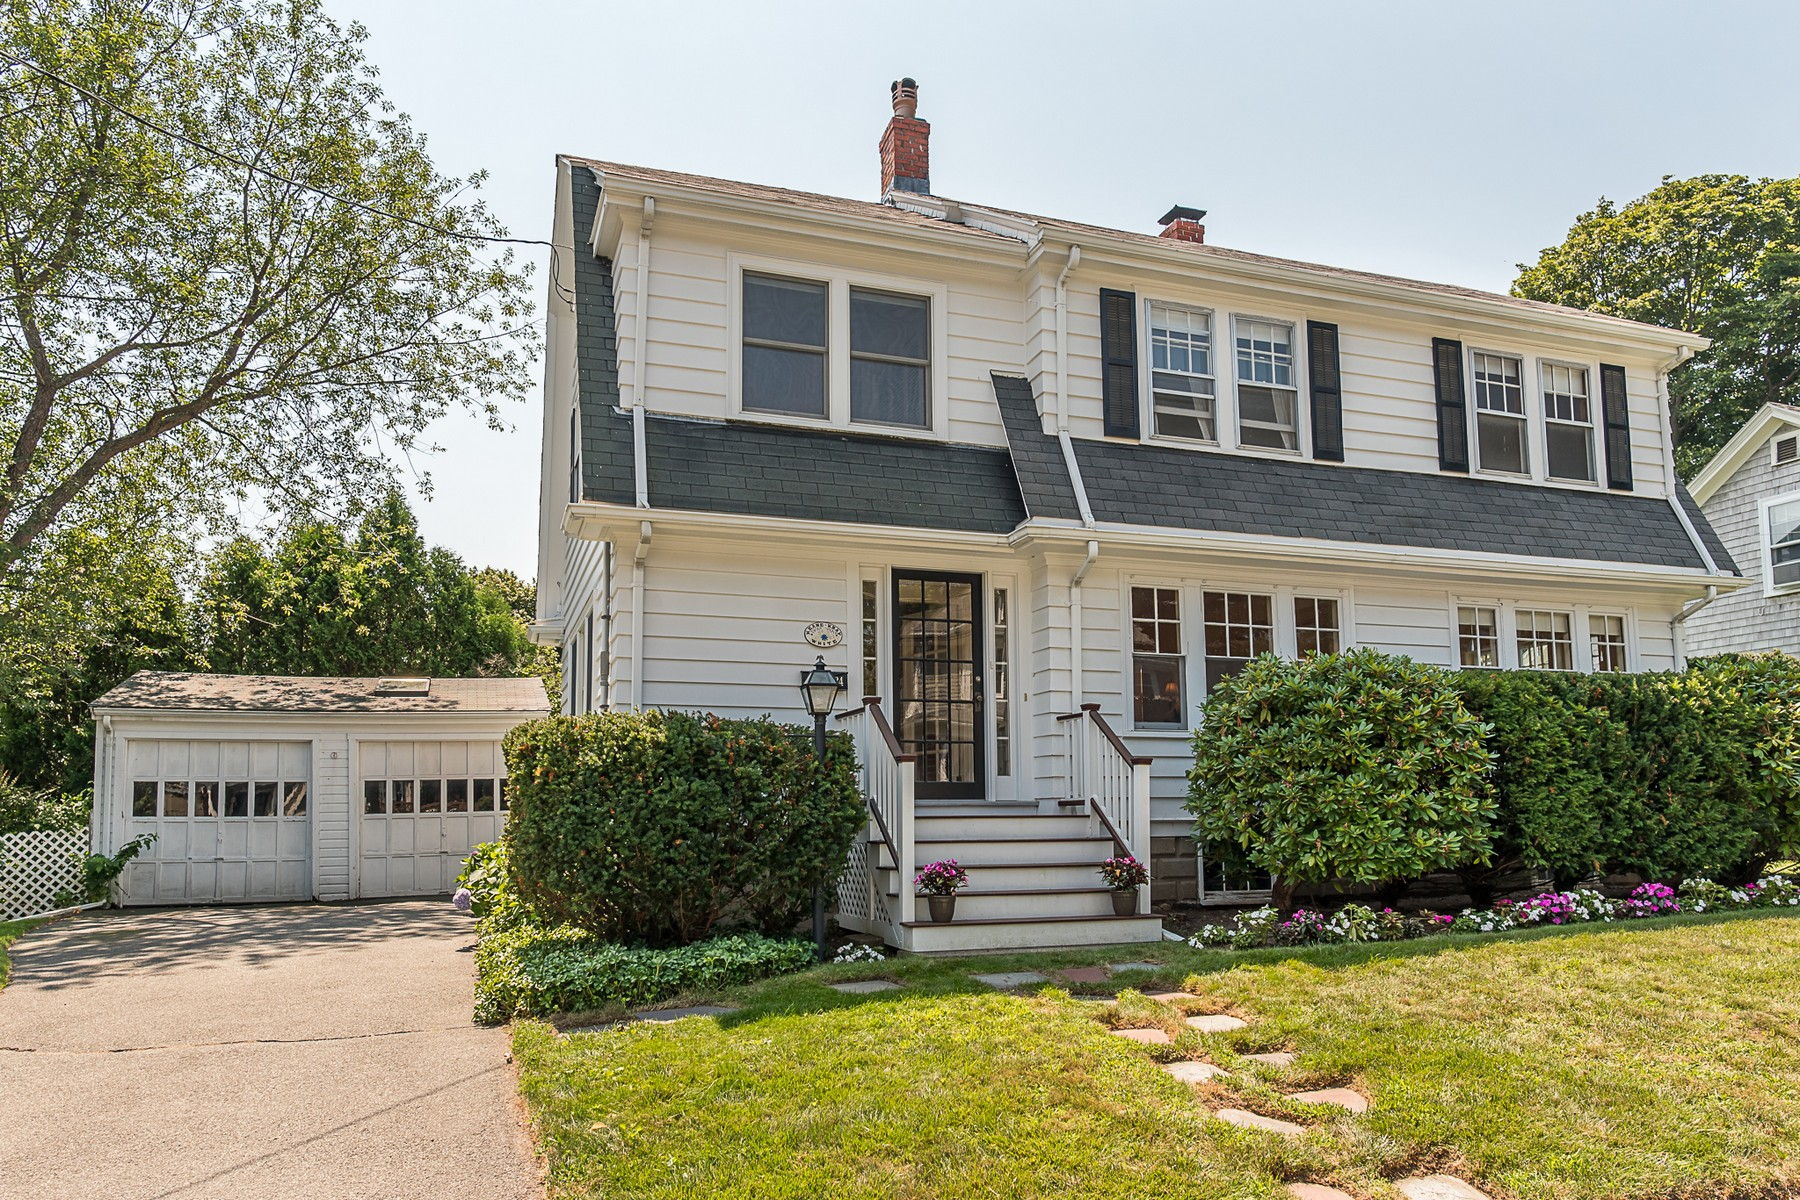 Single Family Home for Sale at Charming Dutch Colonial 34 Ruby Avenue Marblehead, Massachusetts 01945 United States